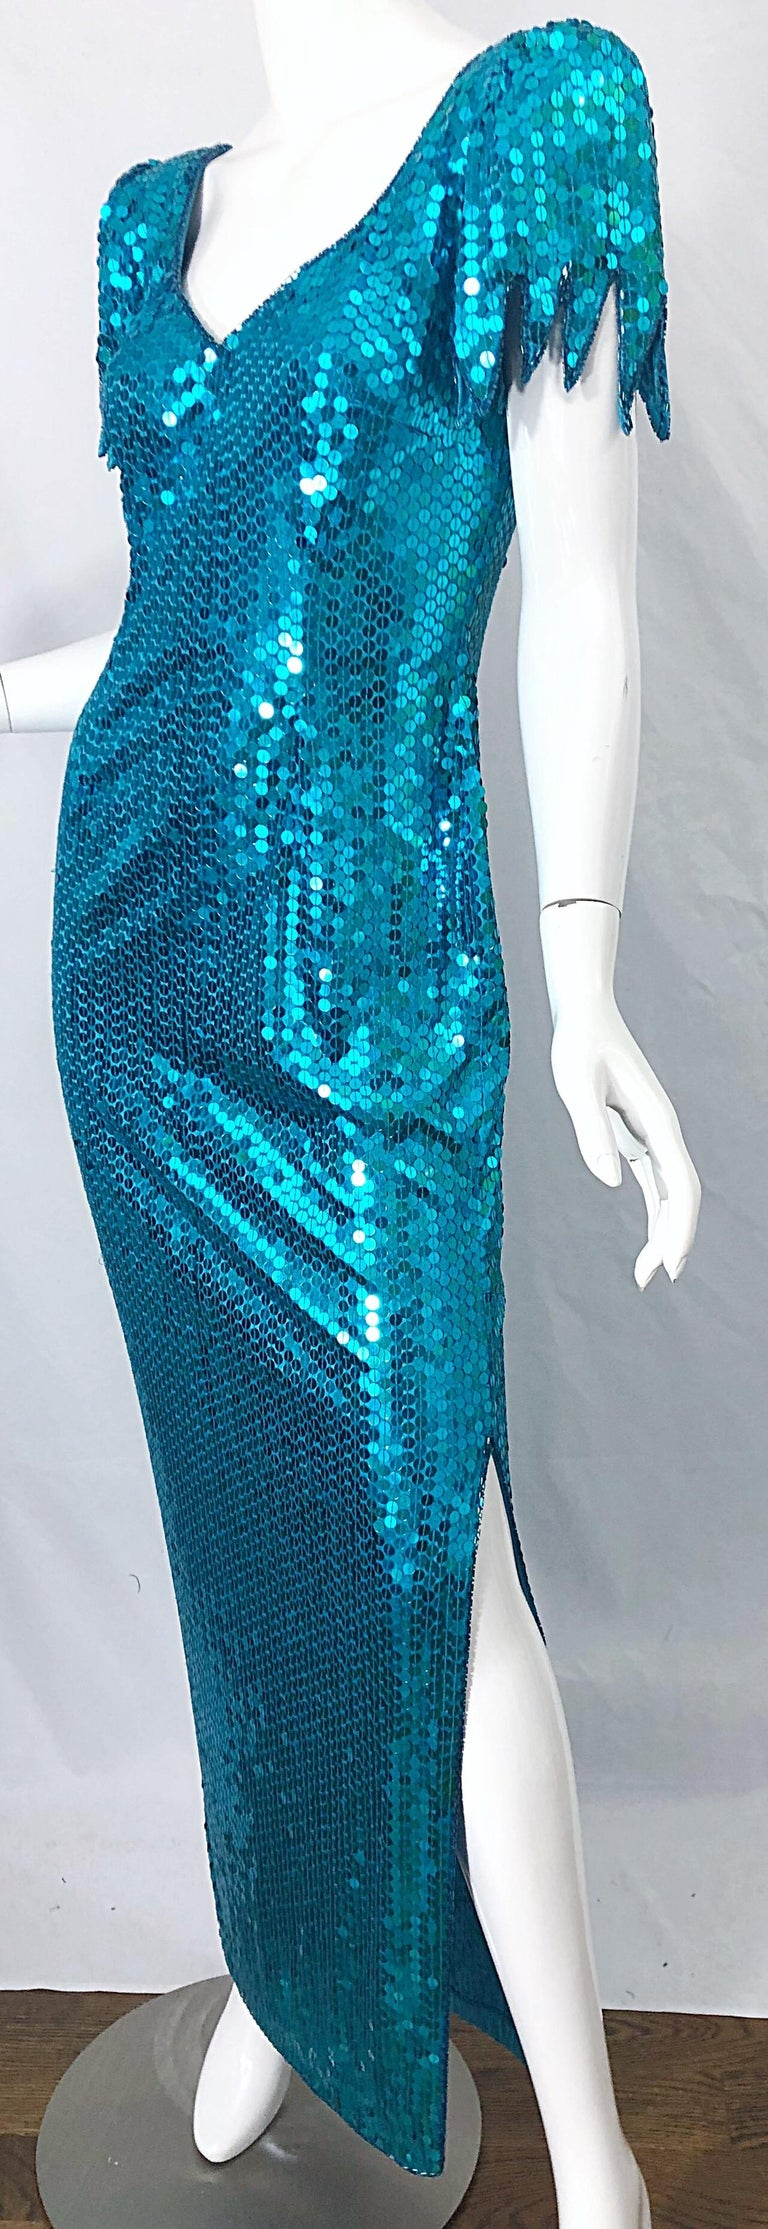 1980s Ted Lapidus Size 10 Turquoise Blue Avant Garde Sequined Vintage 80s Gown  For Sale 5